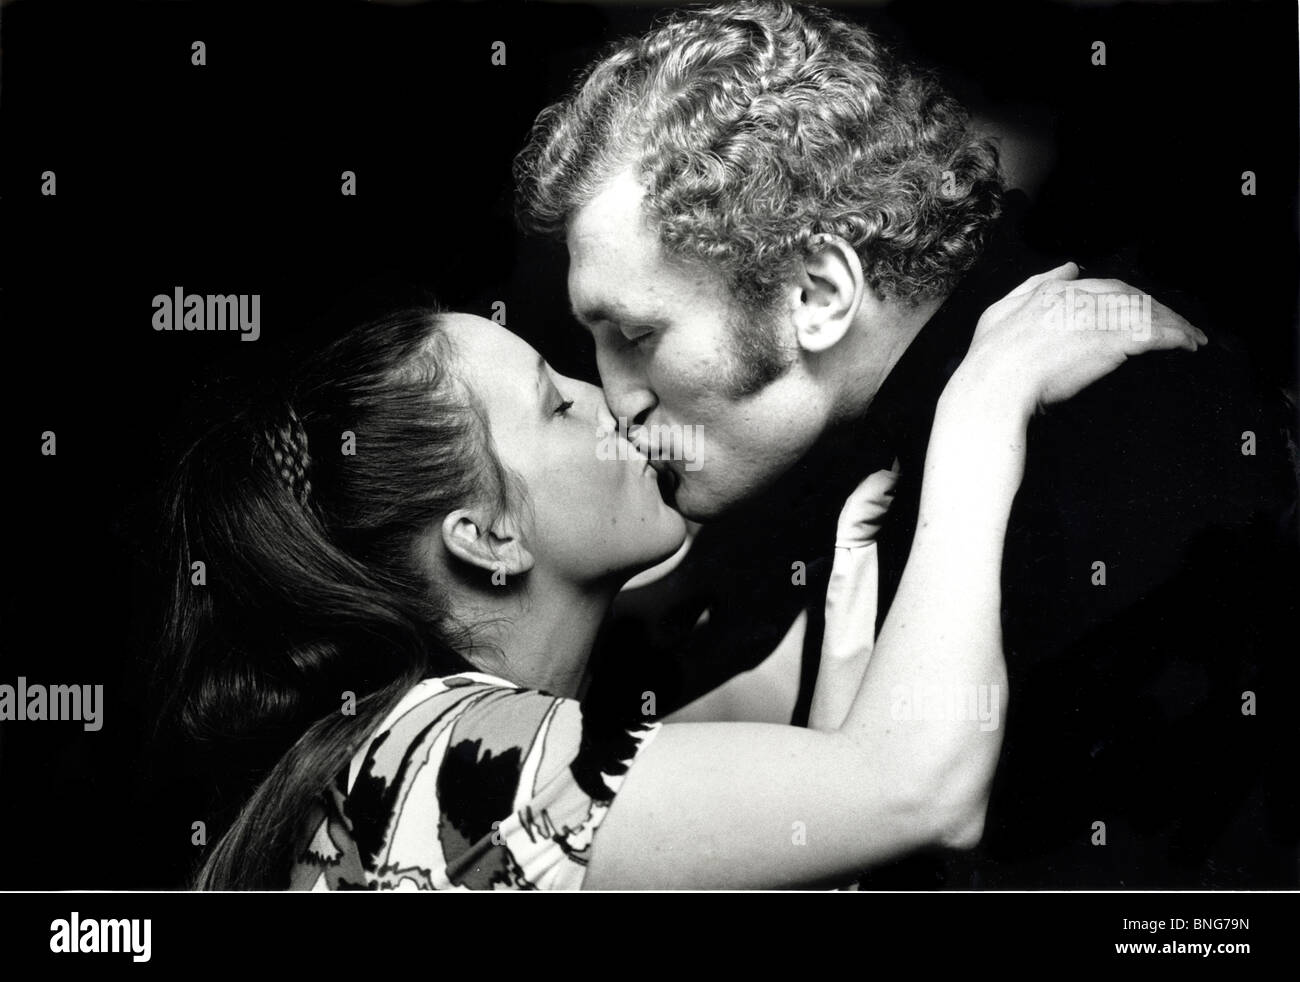 Joe Bugner the Hungarian born British heavyweight champion boxer, kissing his wife. - Stock Image